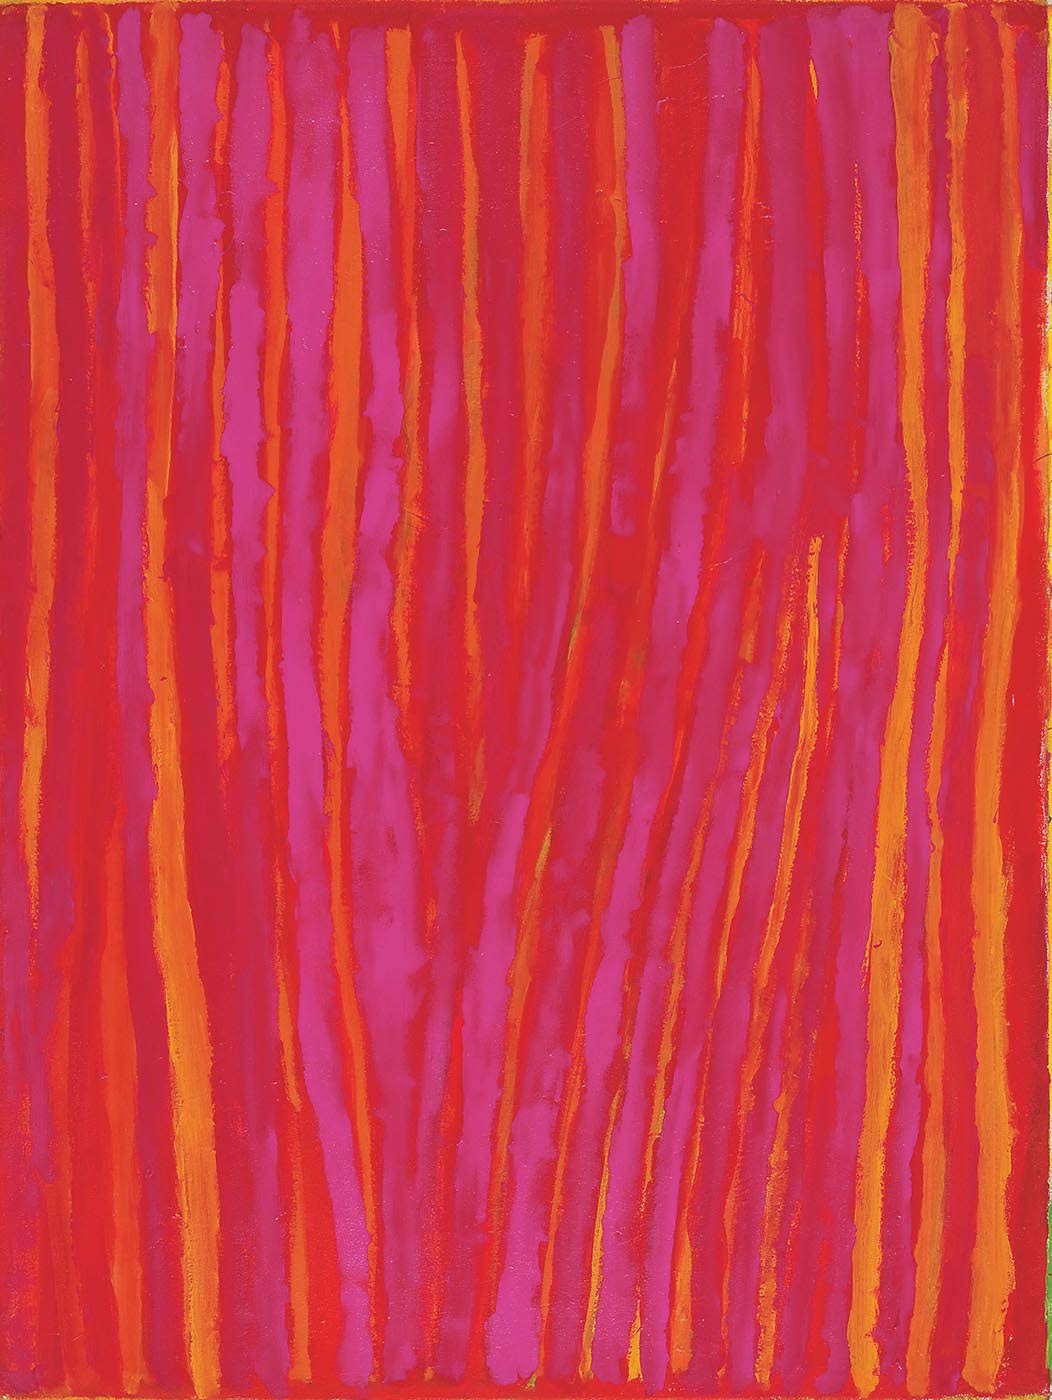 A painting on canvas with purple-pink, yellow, red and orange vertical stripes. The central section has less yellow and orange, and in the lower part the stripes are closer together and converge towards the centre bottom edge. - click to view larger image